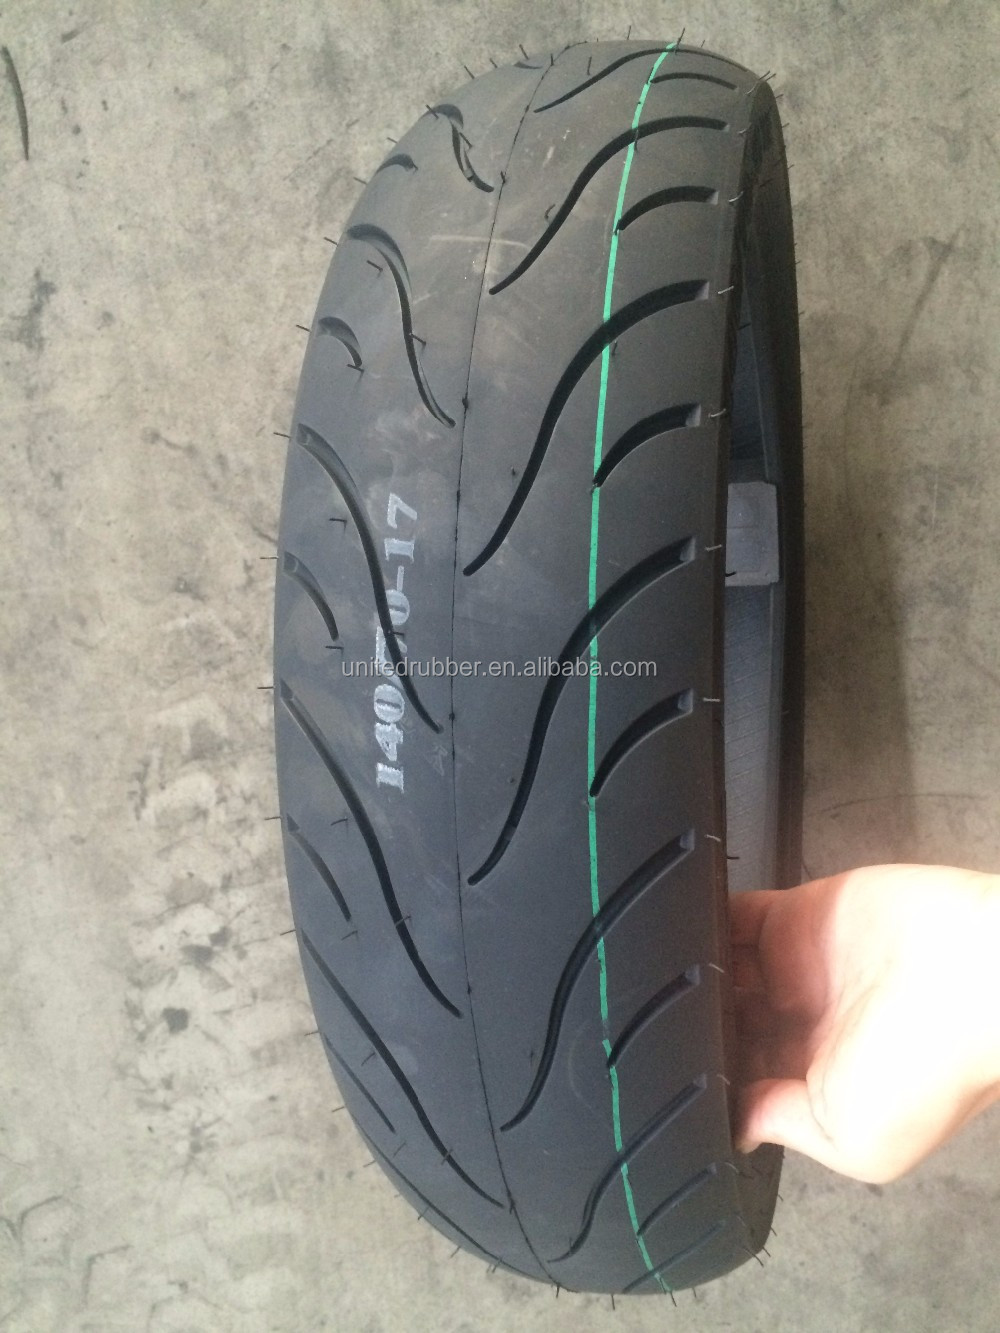 130/90-18 Motorcycle tyre inner tube,high quality ,cheap price